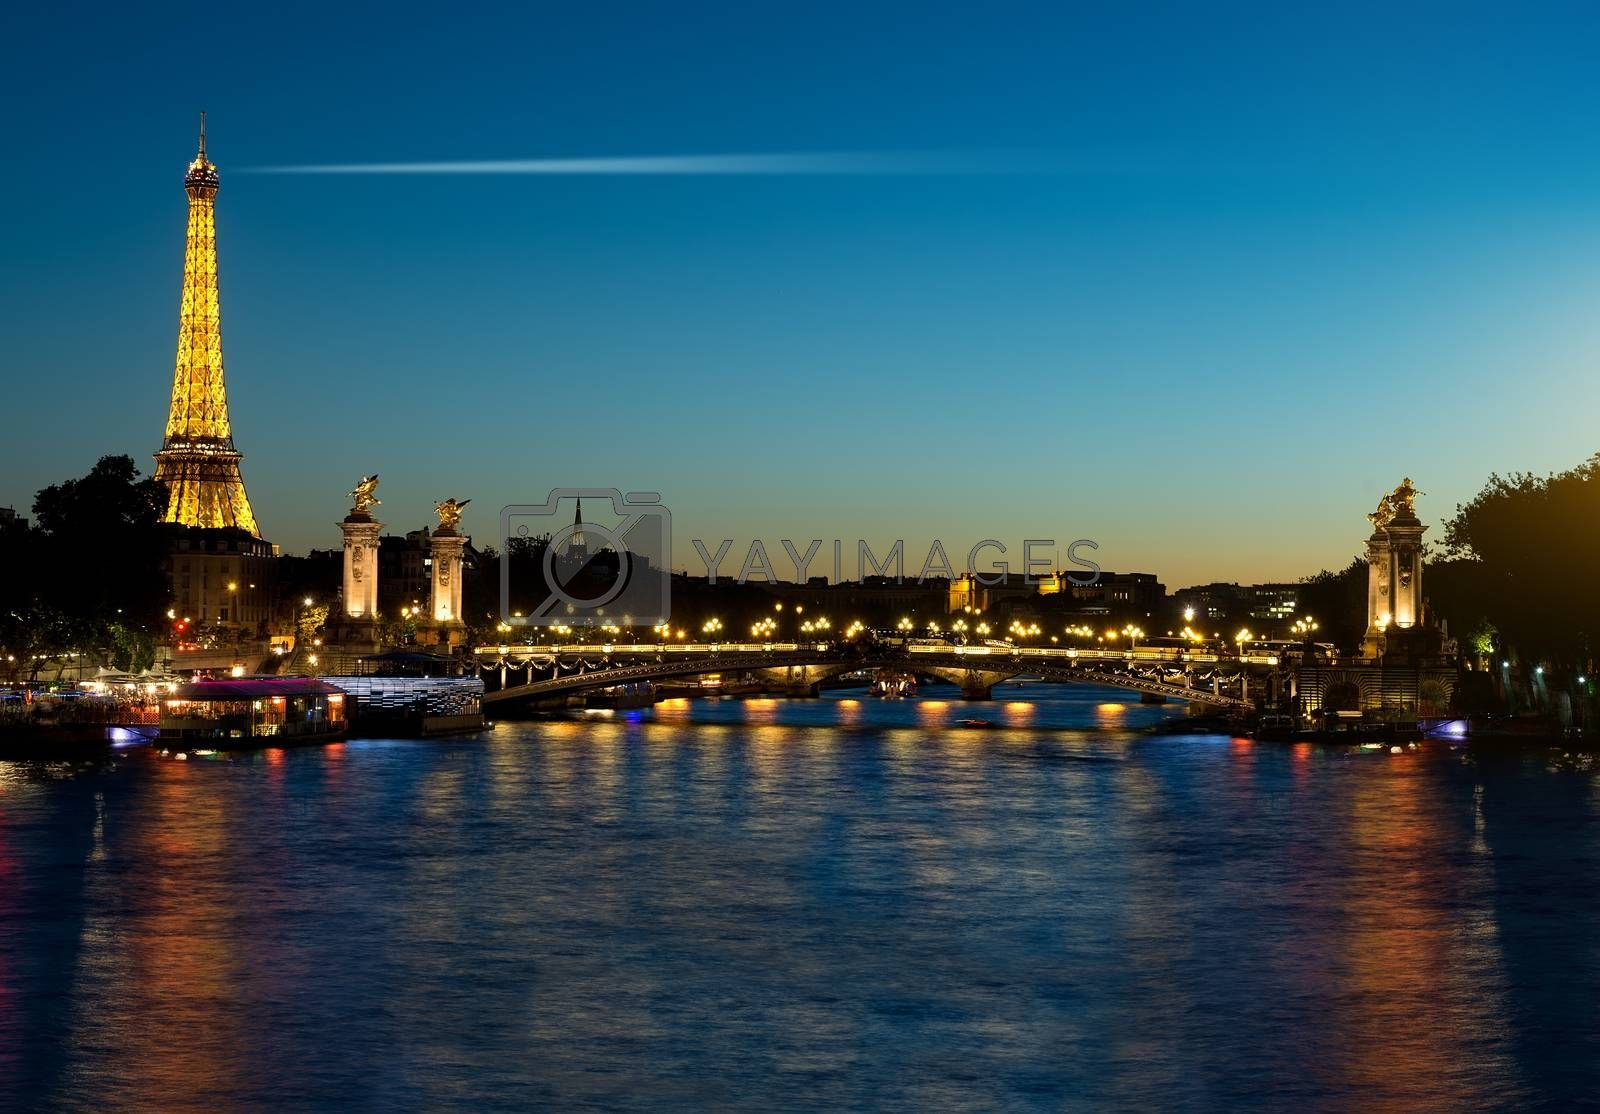 Evening in Paris by Givaga